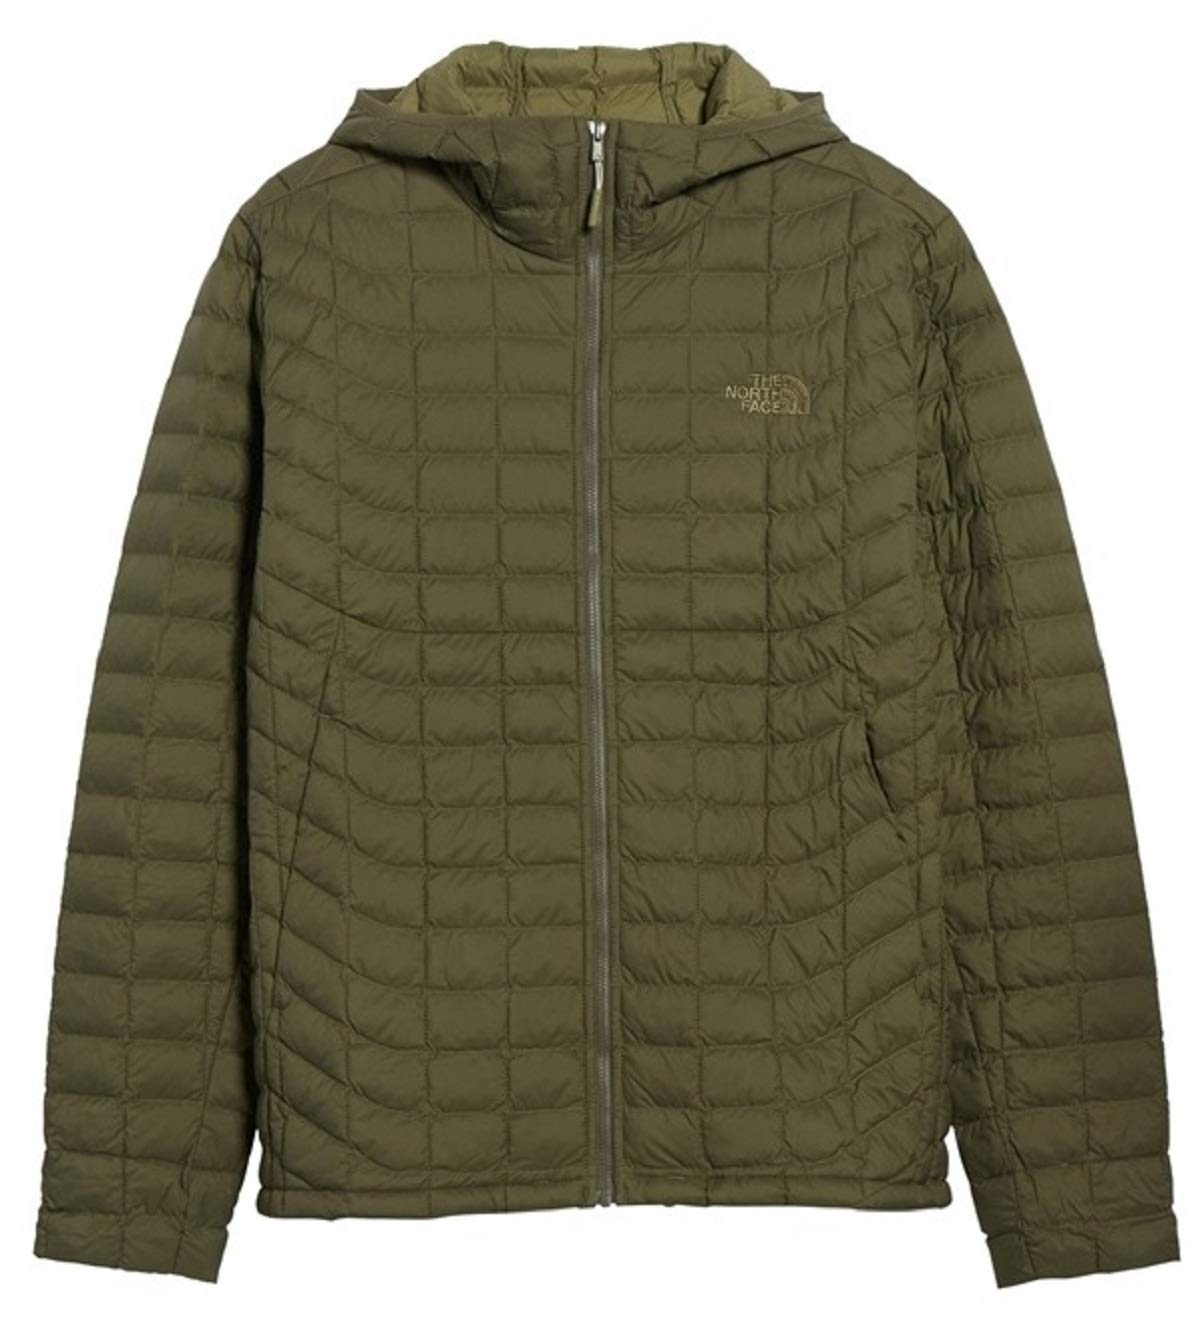 82f2a0ddff1b The North Face Men s Thermoball Hoodie - HealthCare Too